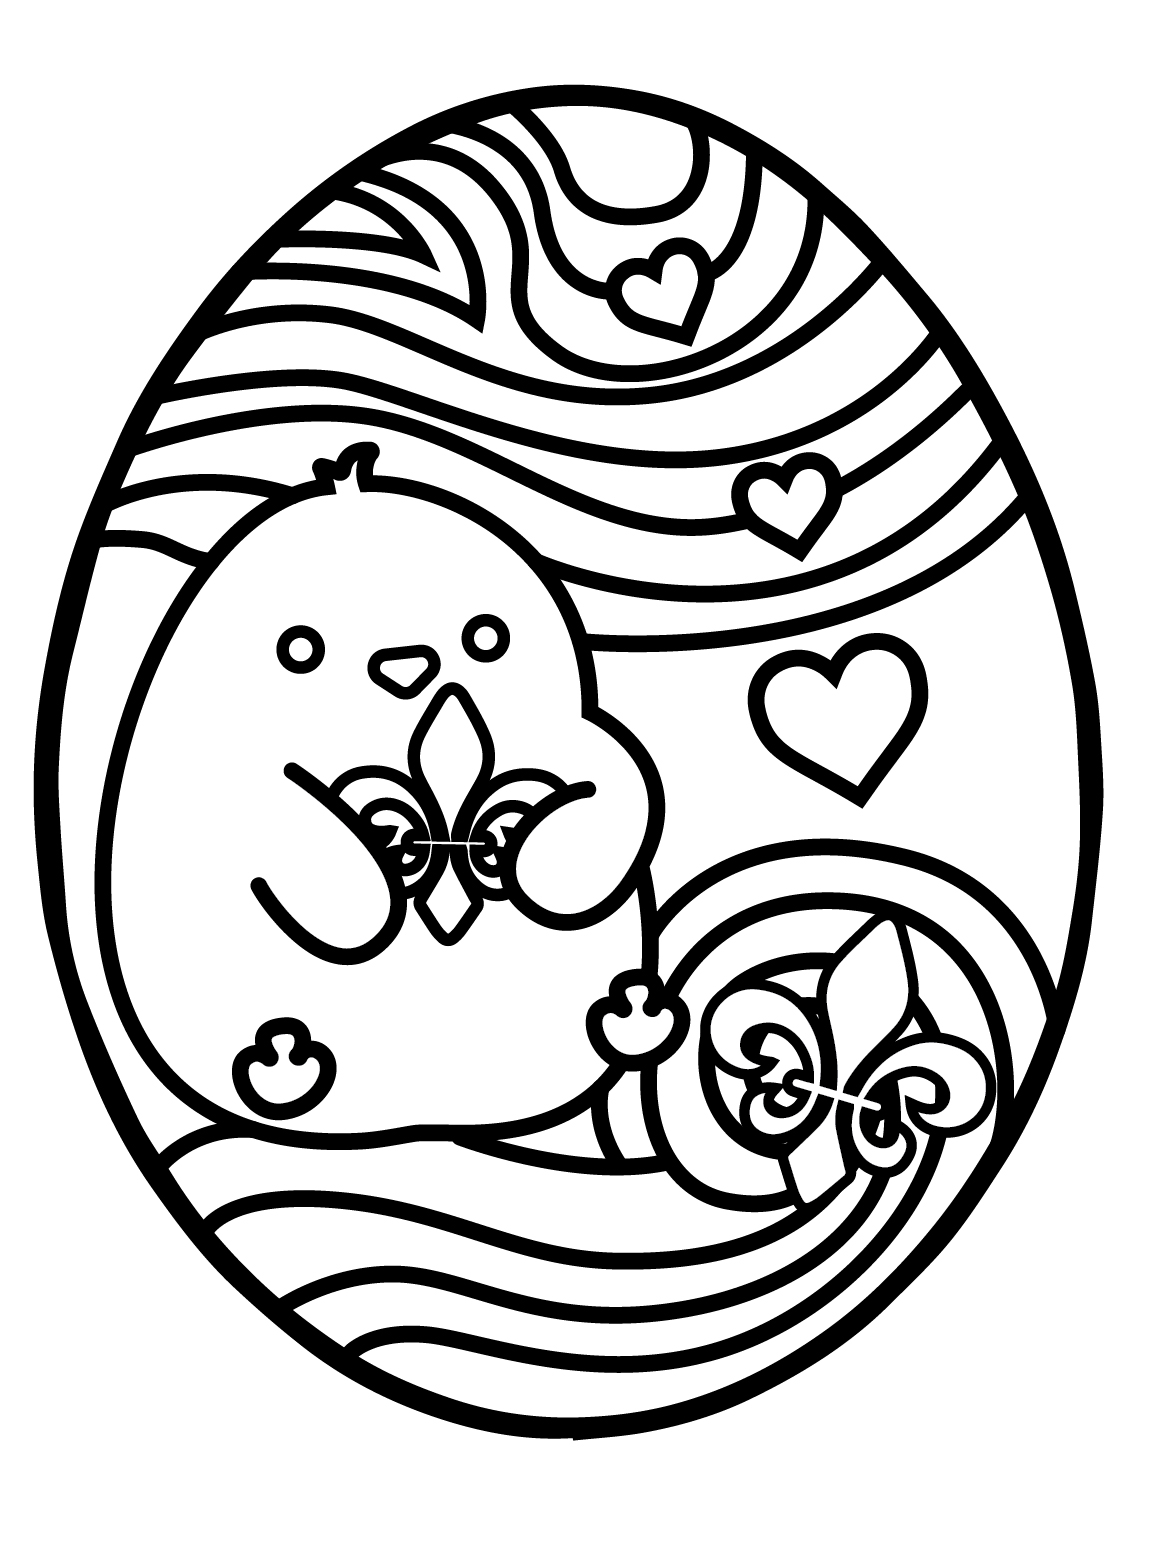 easter eggs coloring page 217 free printable easter egg coloring pages easter eggs coloring page